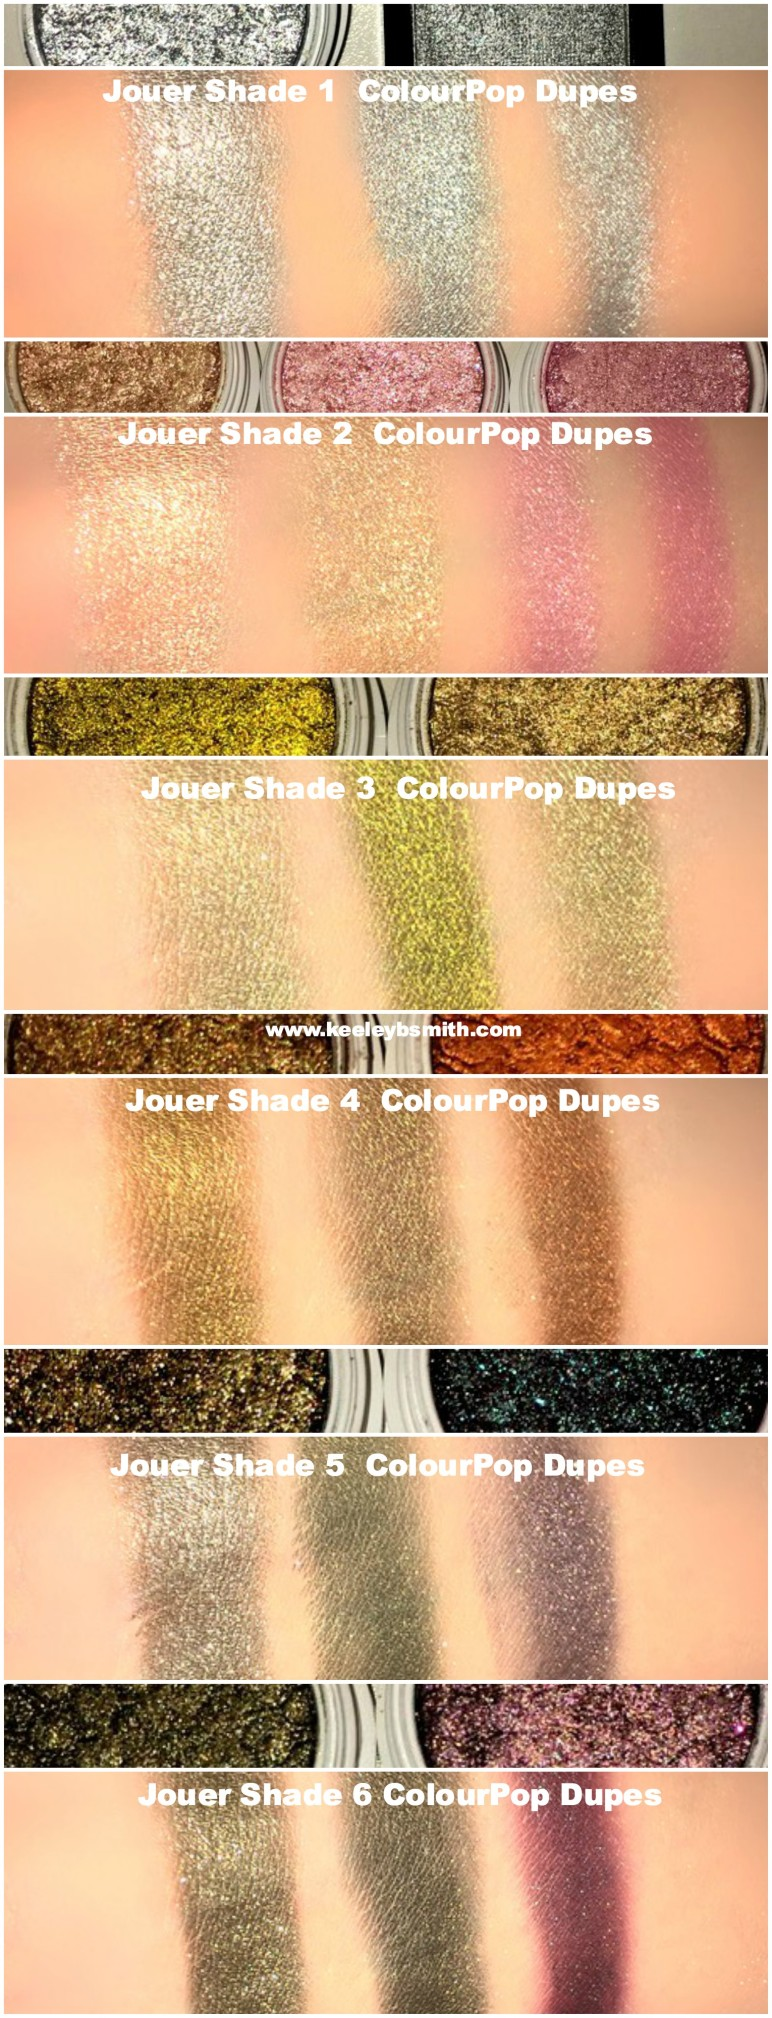 Jouer CP Swatches 2